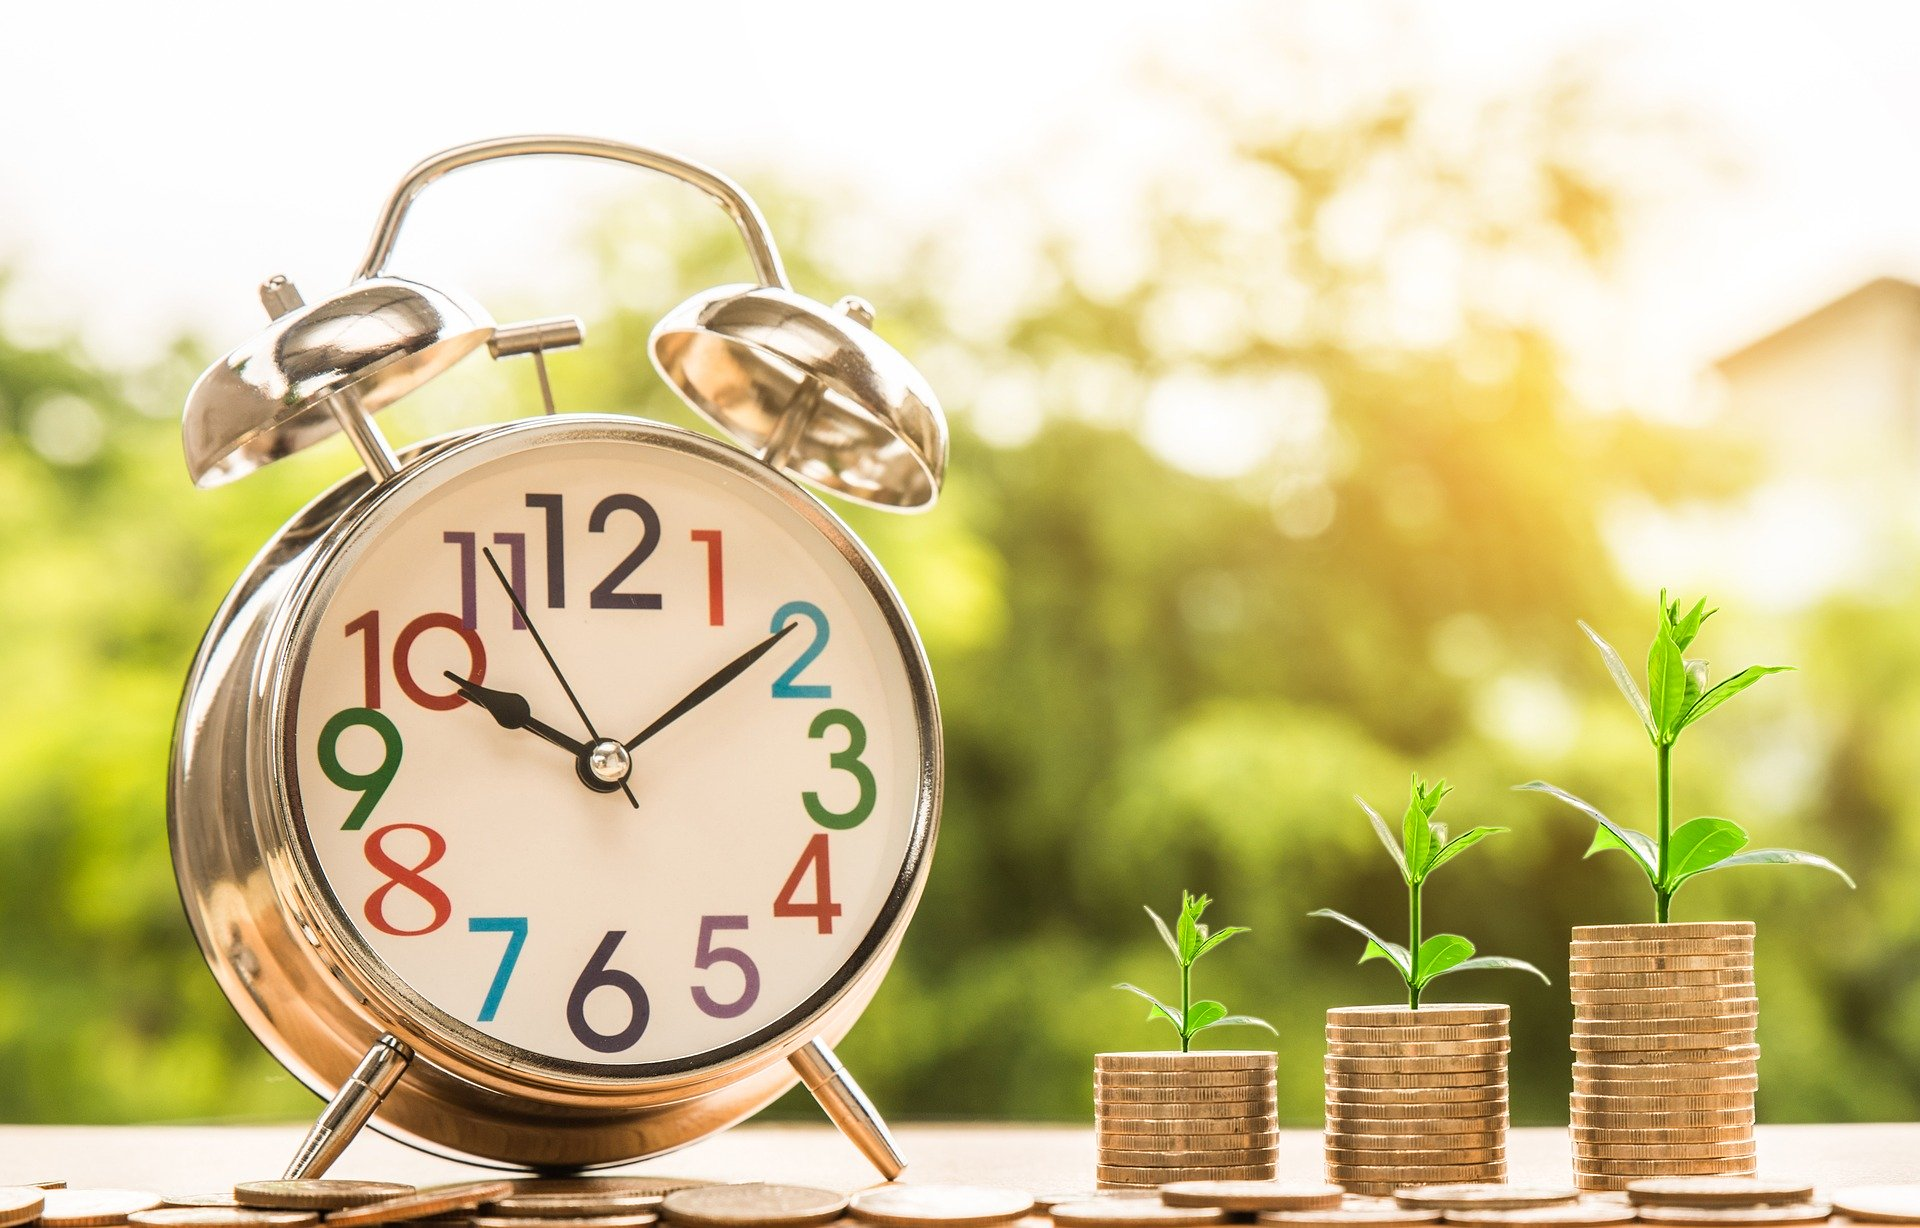 debt-payment-due-clock-ticking-time-runing-out-money